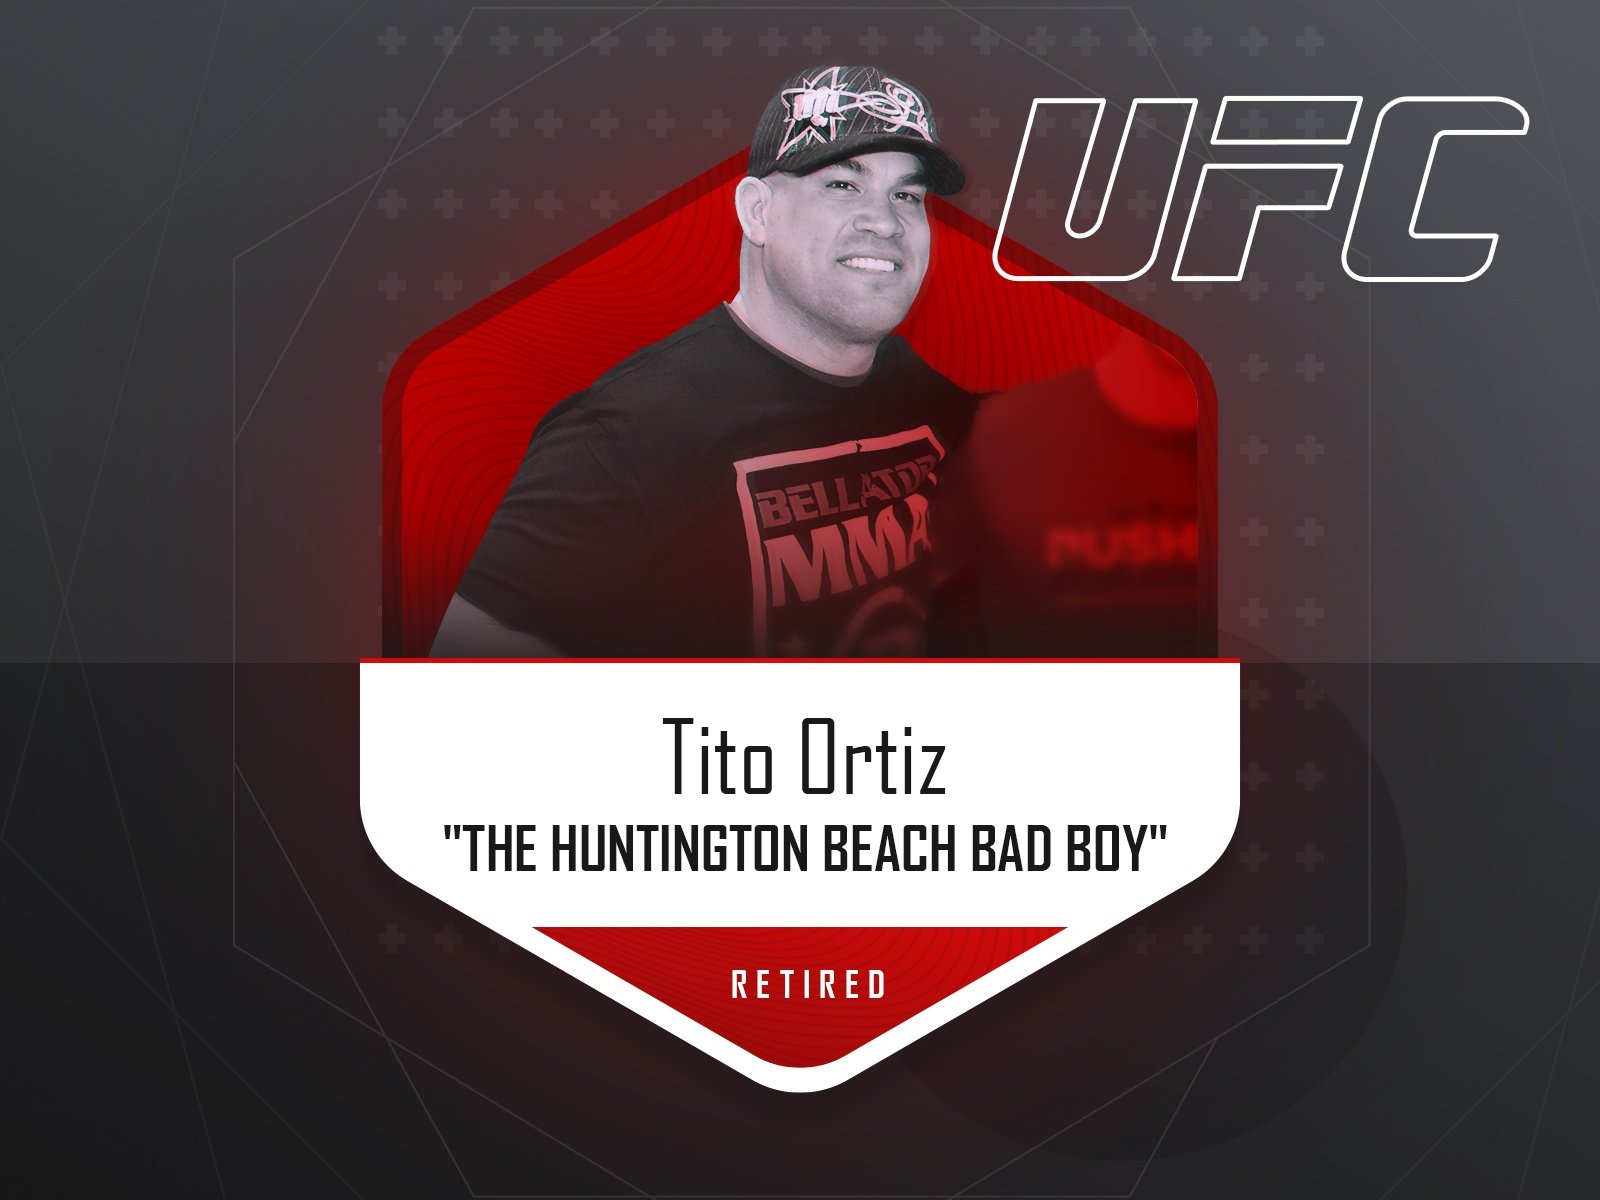 Tito Ortiz - UFC fighter